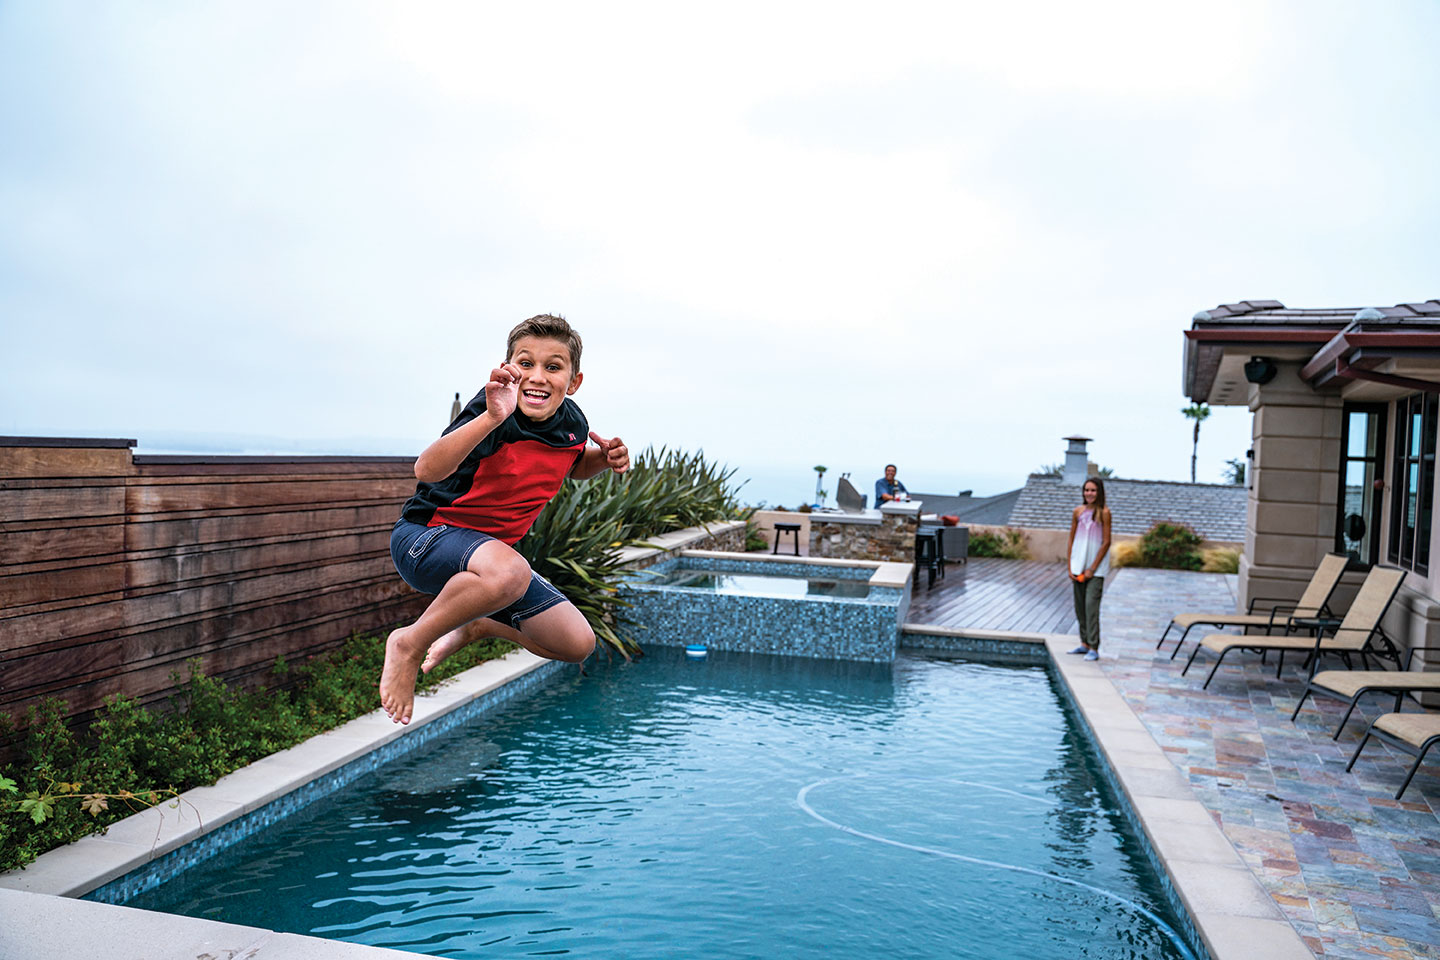 Coastal family-friendly remodel pool with kids